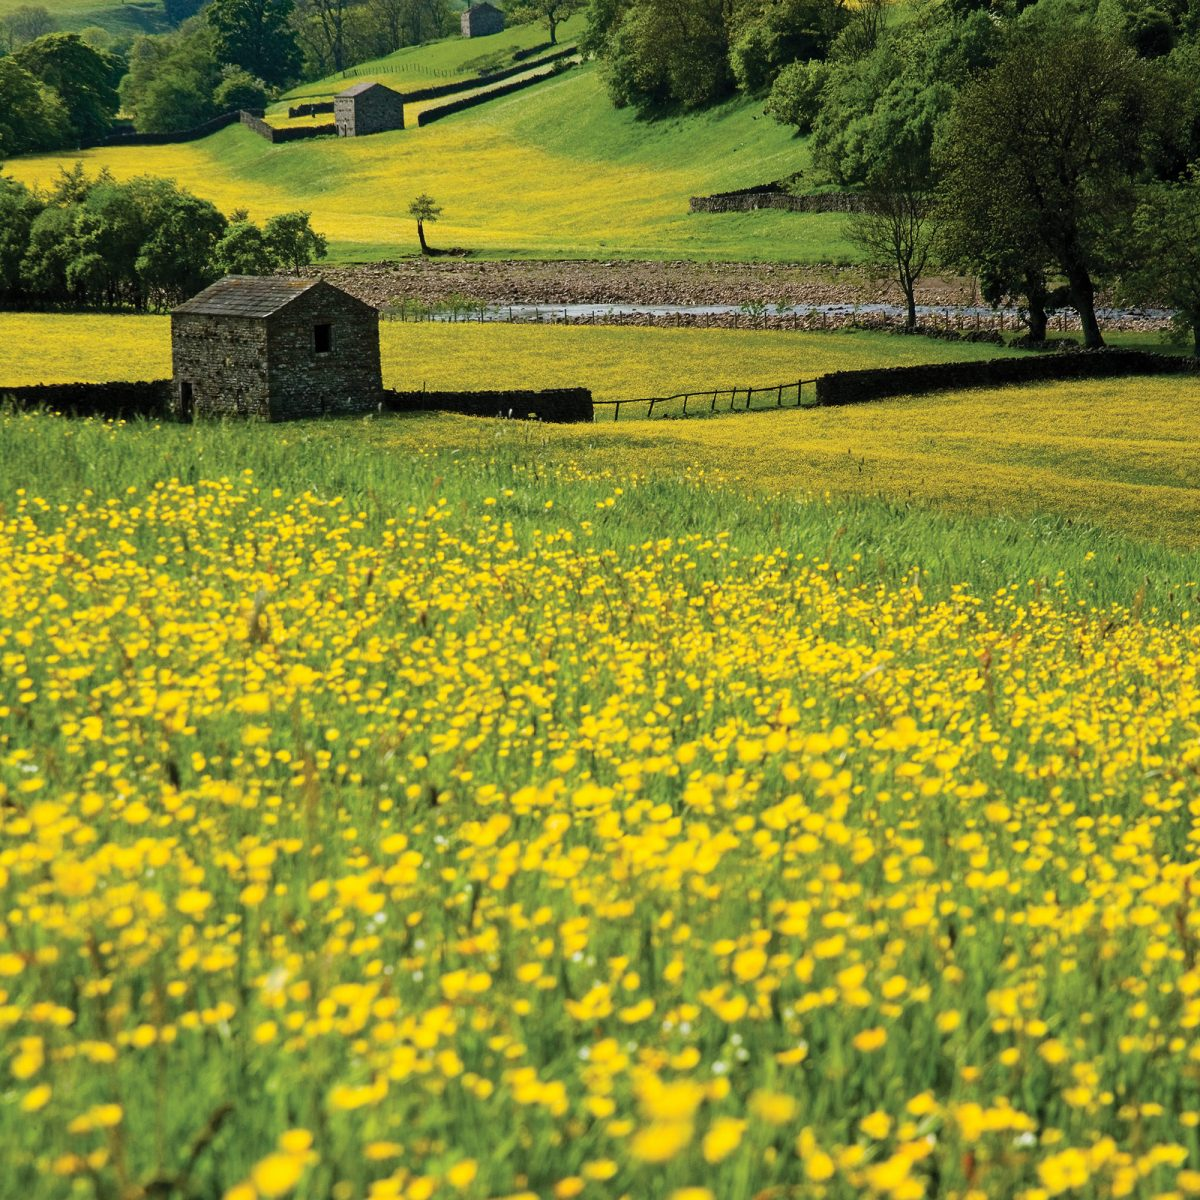 English country meadow with a barn